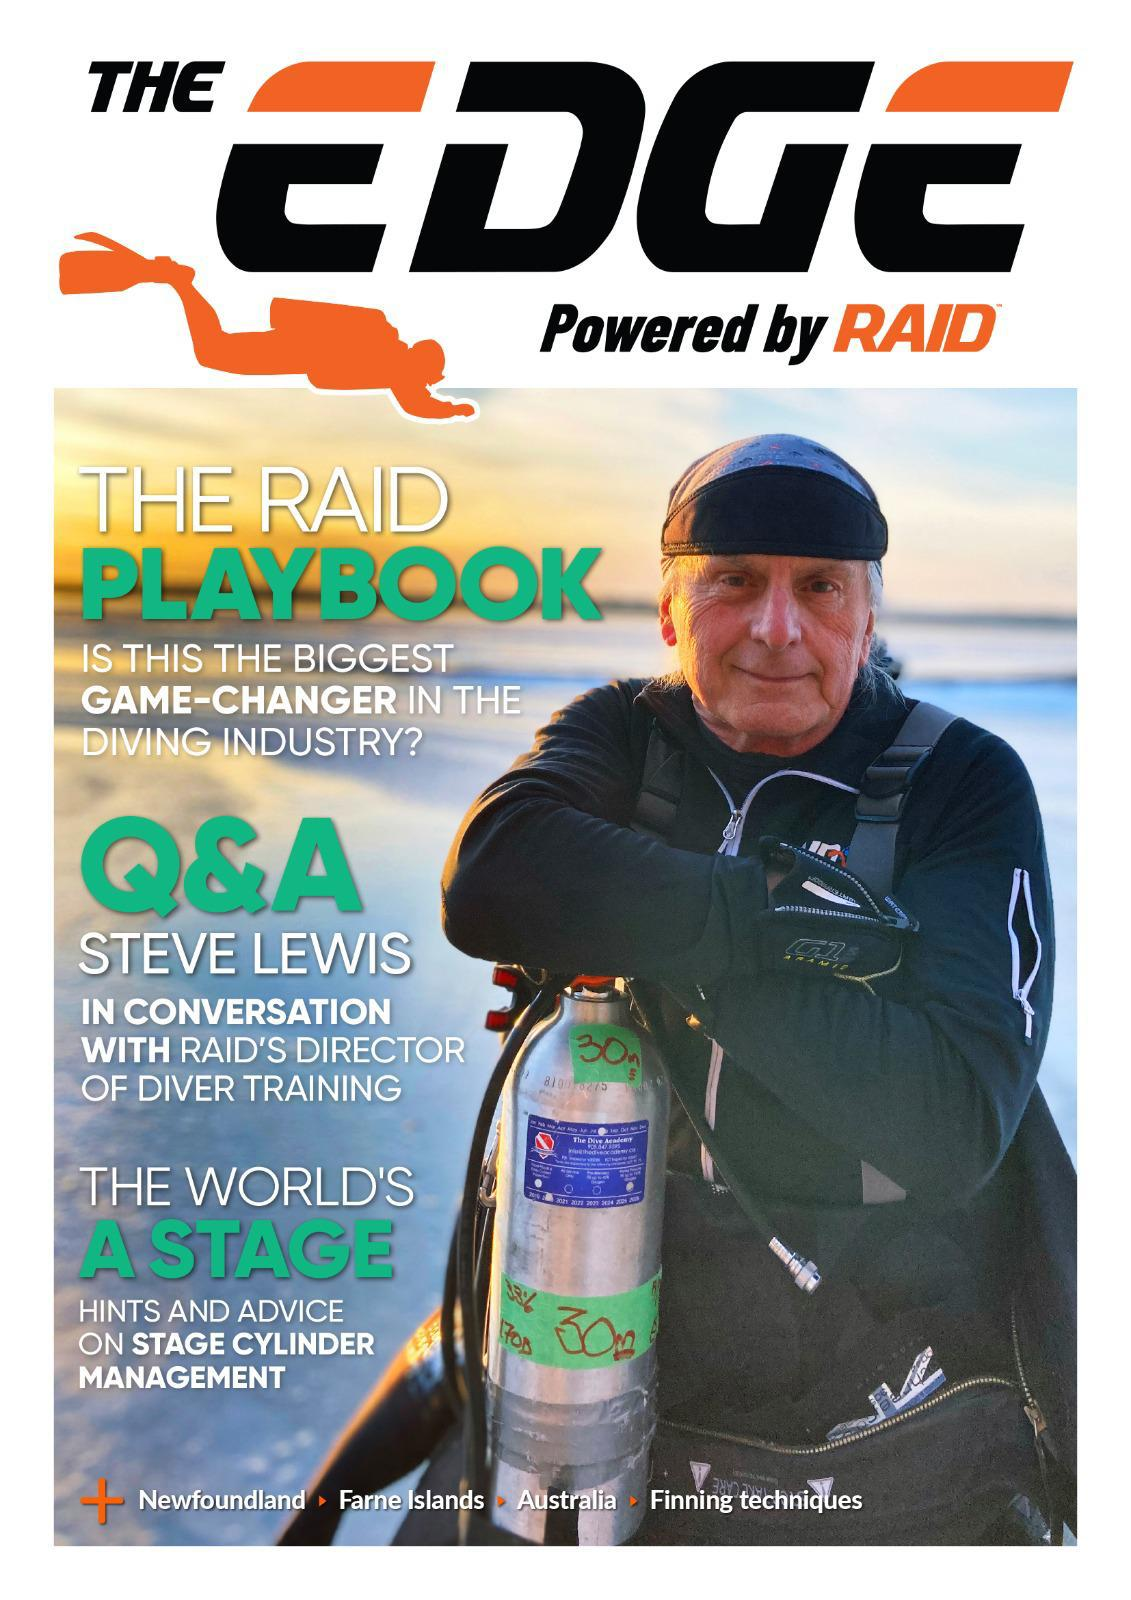 raid-releases-second-issue-of-'the-edge'-magazine